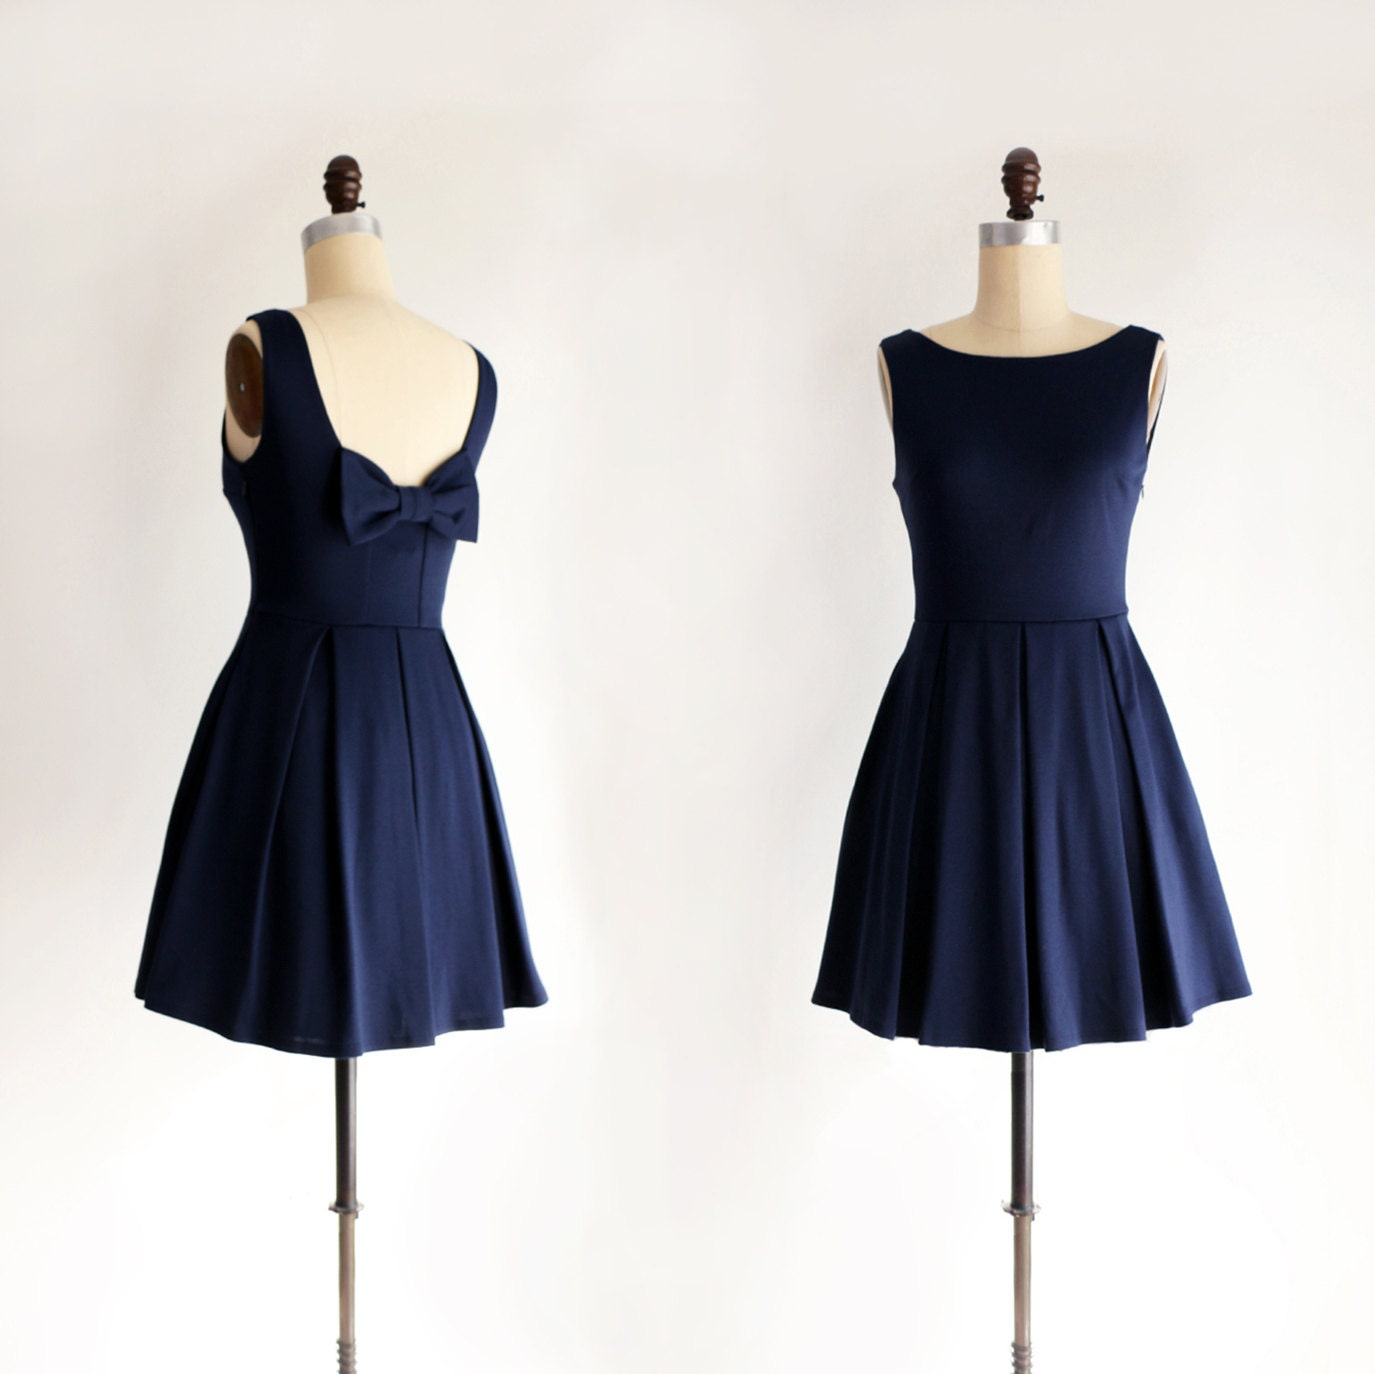 JANUARY Navy blue bridesmaid dress with bow. vintage